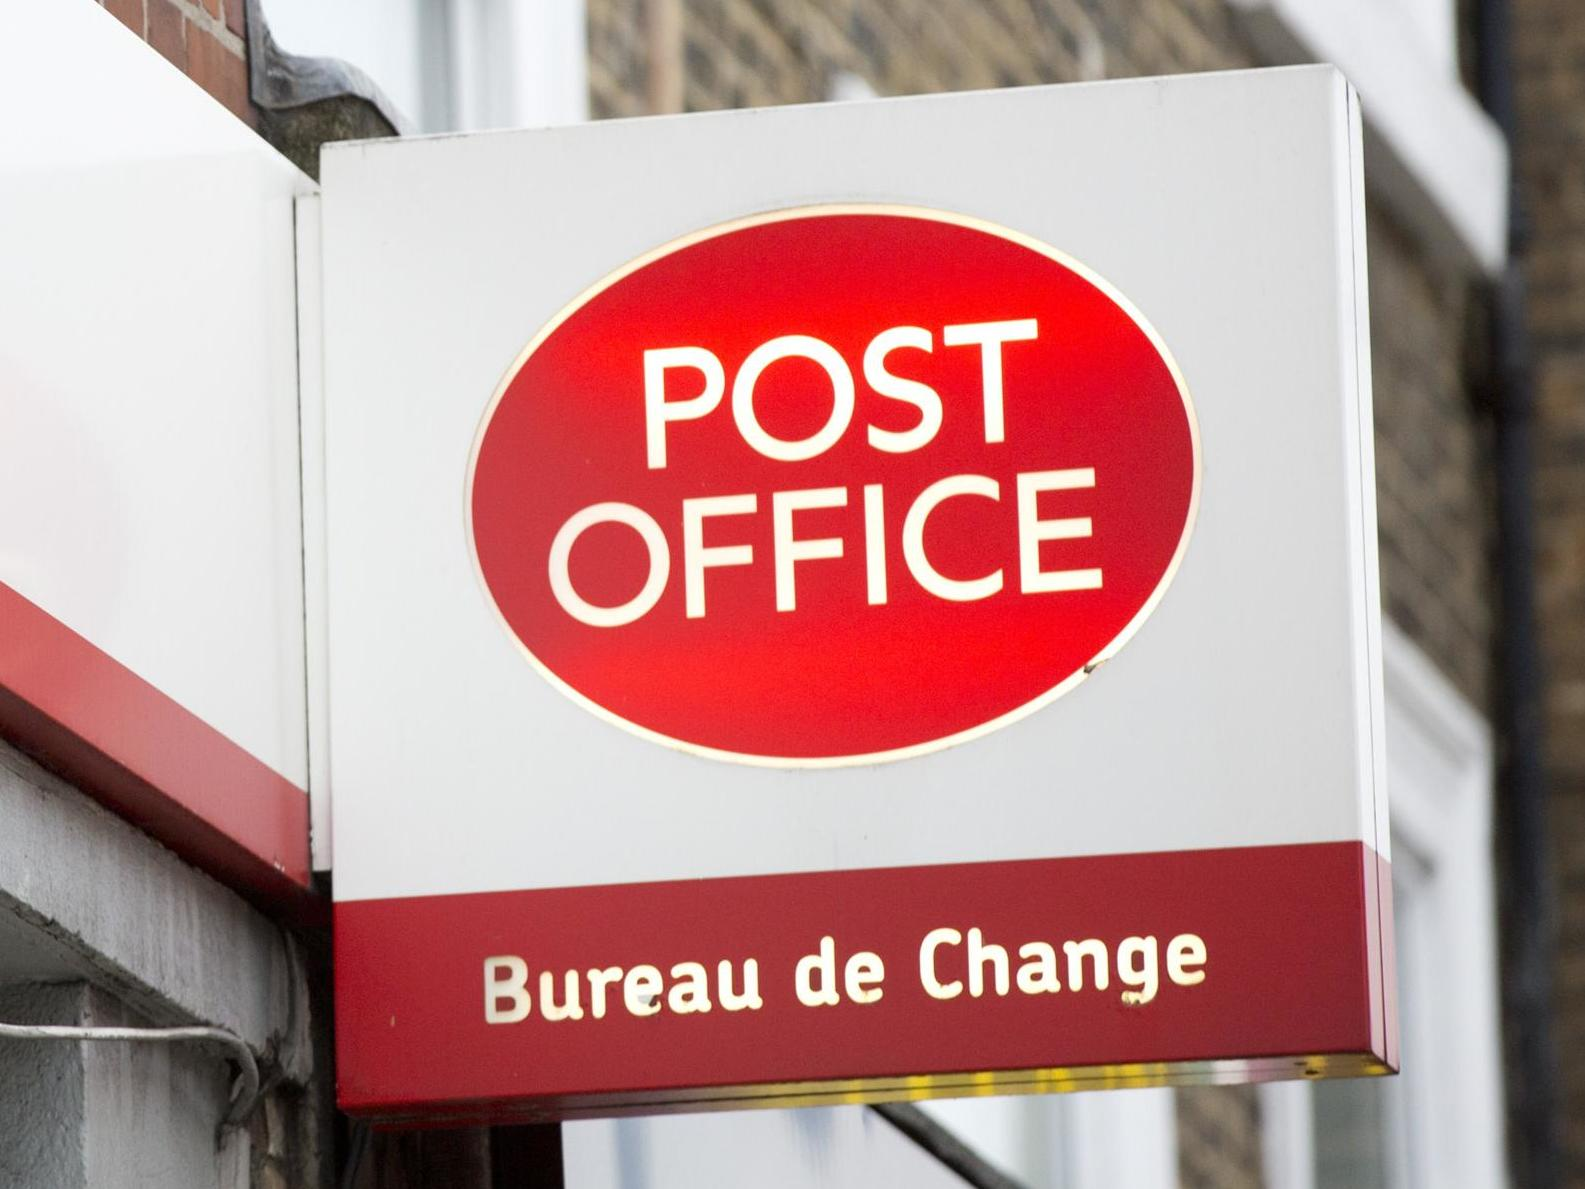 Post office network close to collapse, MPs warned | The